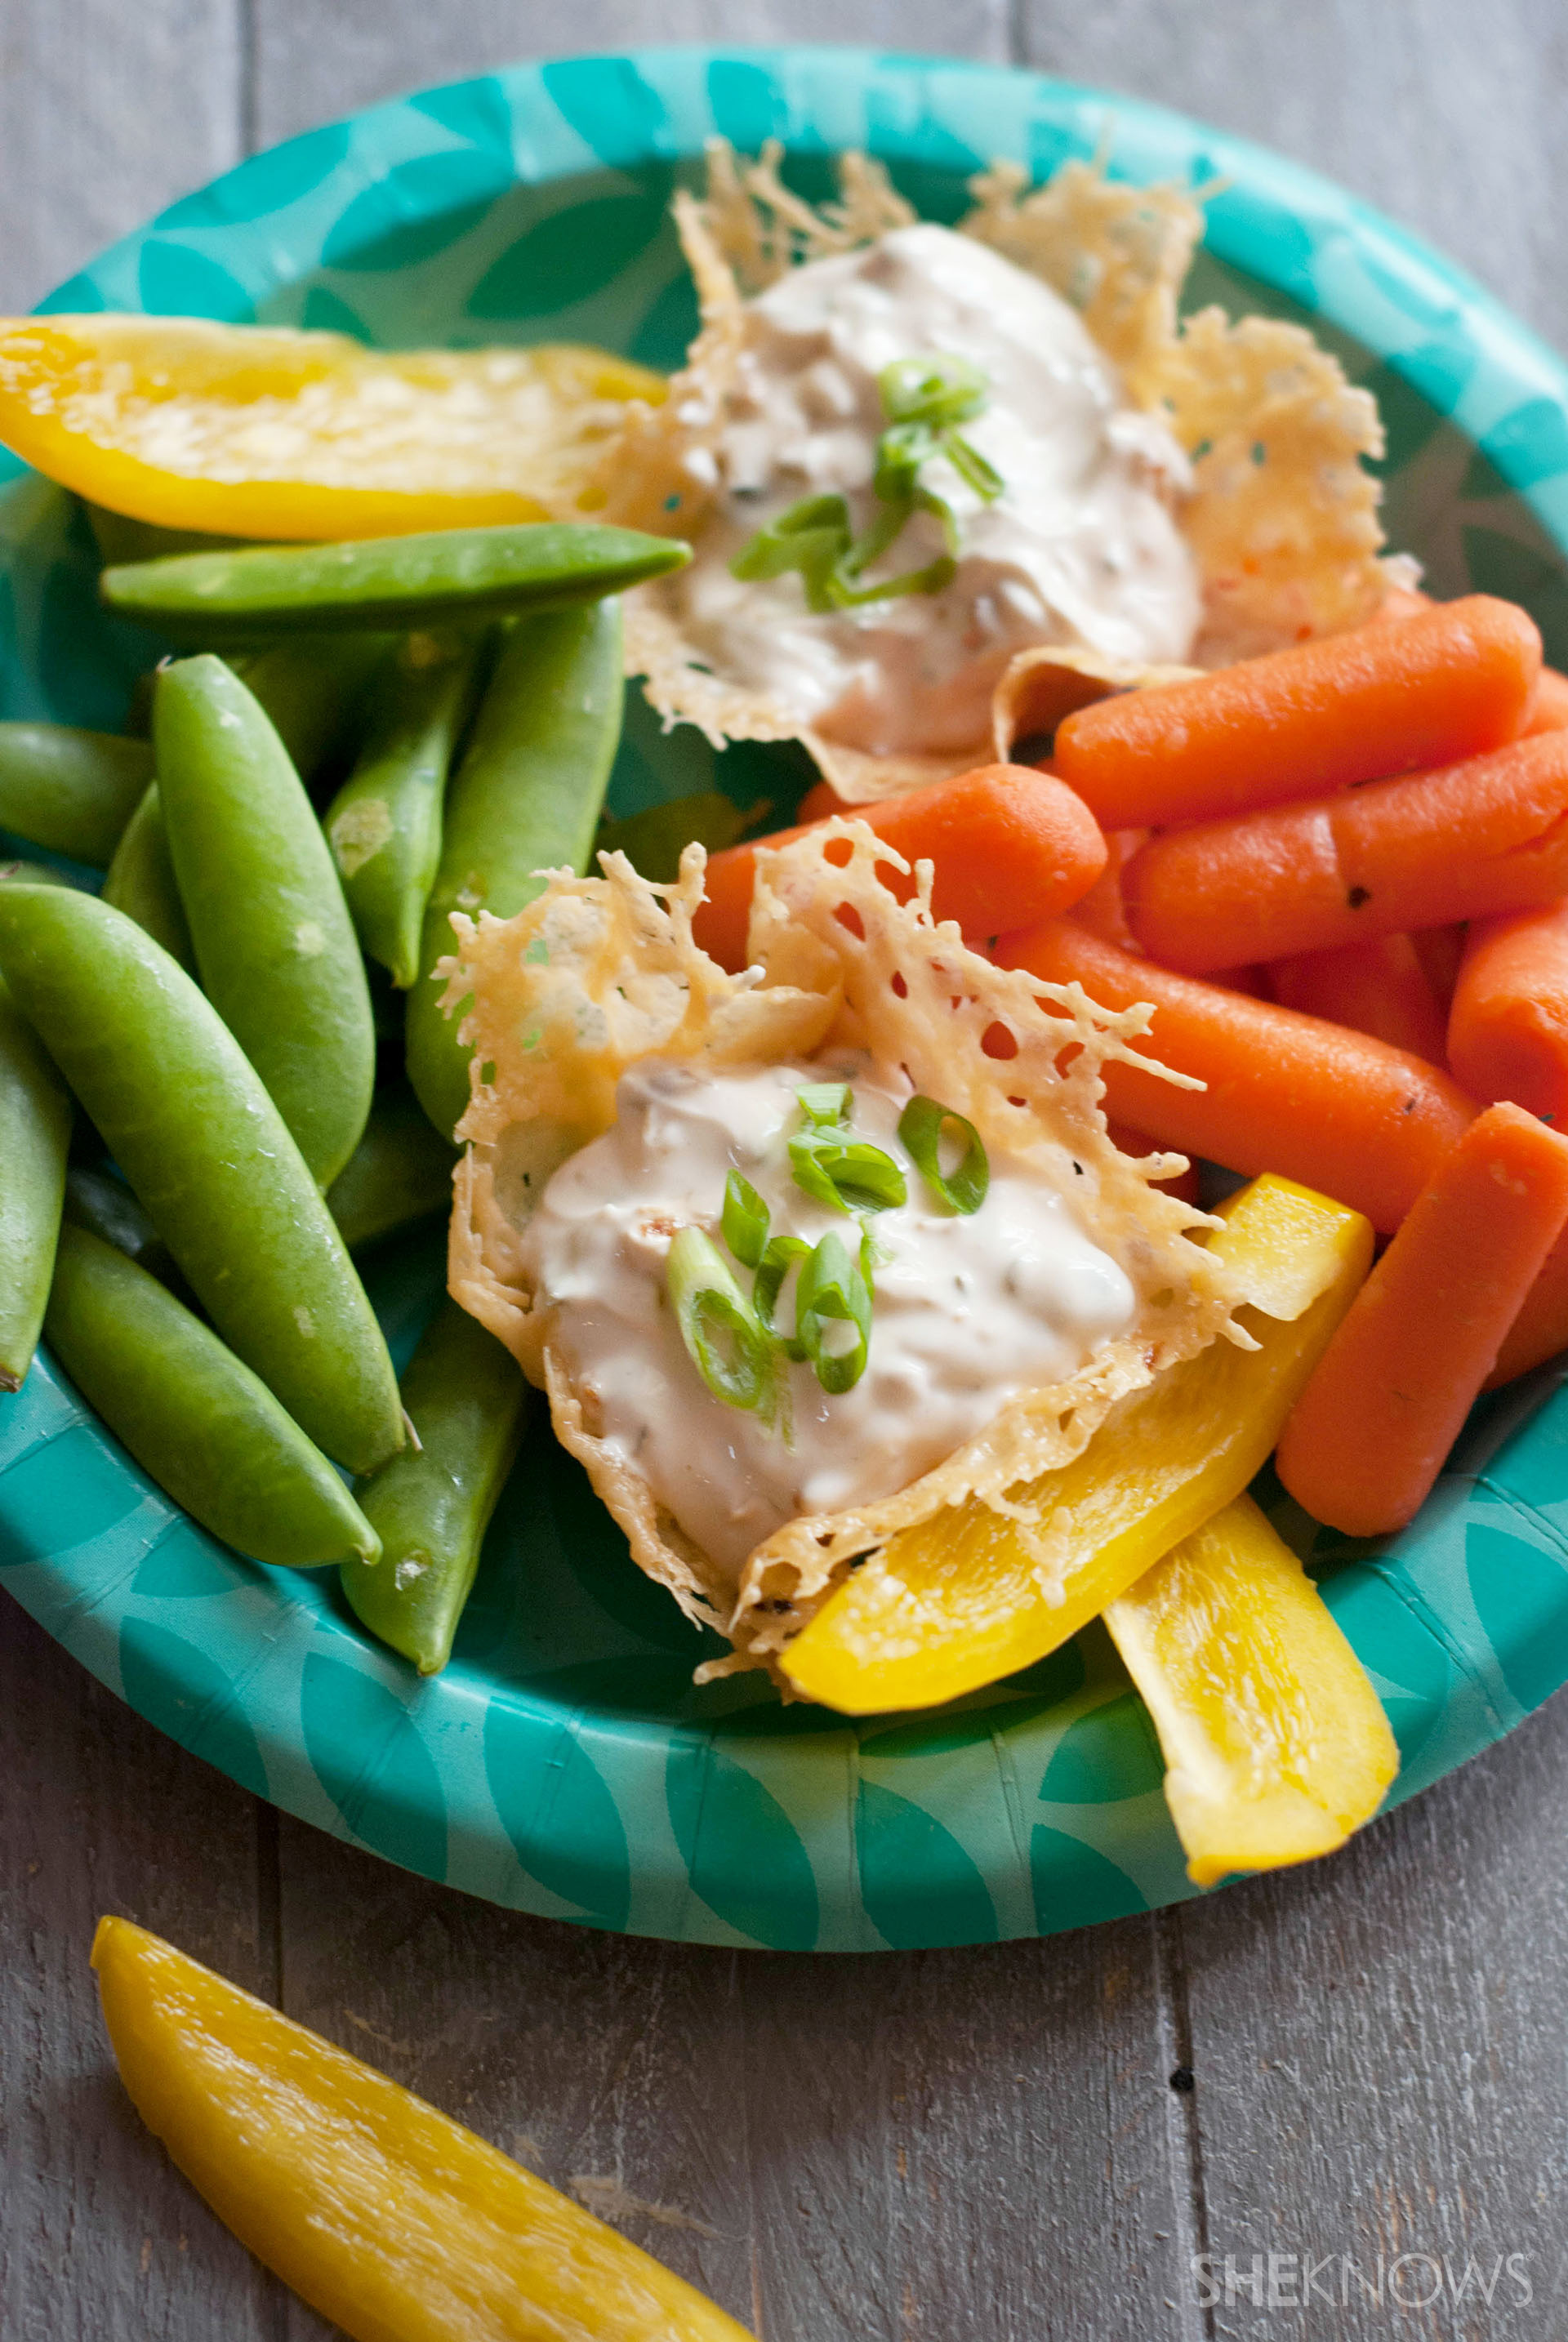 Parmesan cheese cups with onion dip and fresh veggies